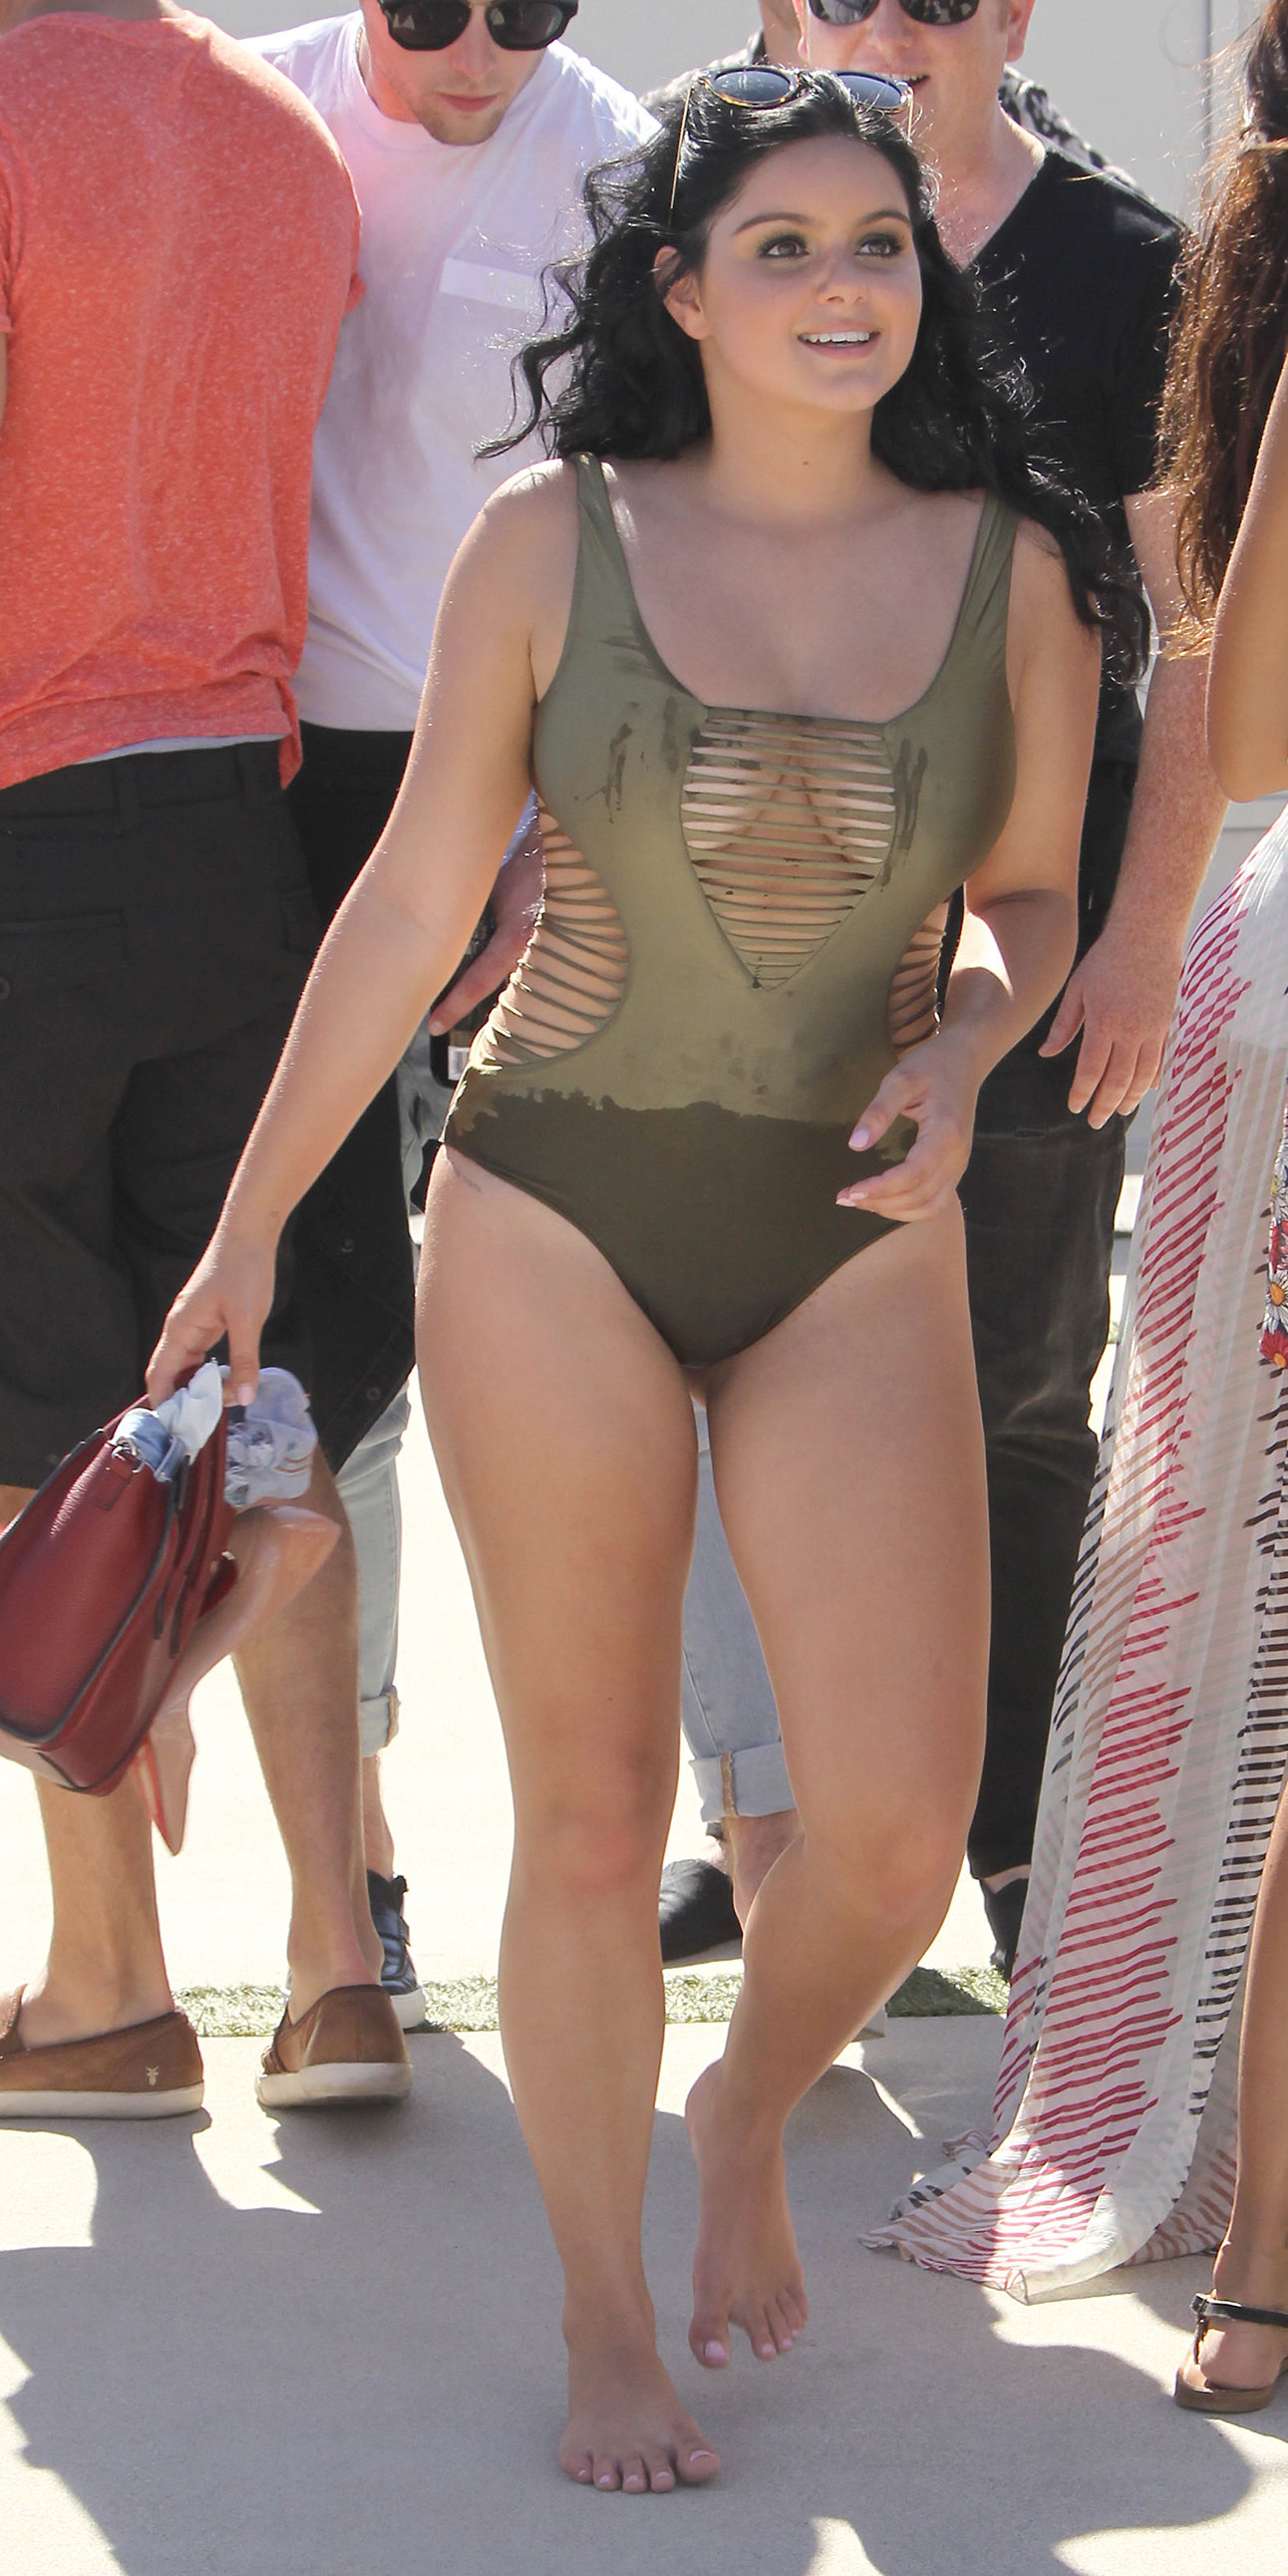 EXCLUSIVE: Ariel Winter walking around the Just Jared 4th Annual Summer Bash in her bathing suit - Los Angeles